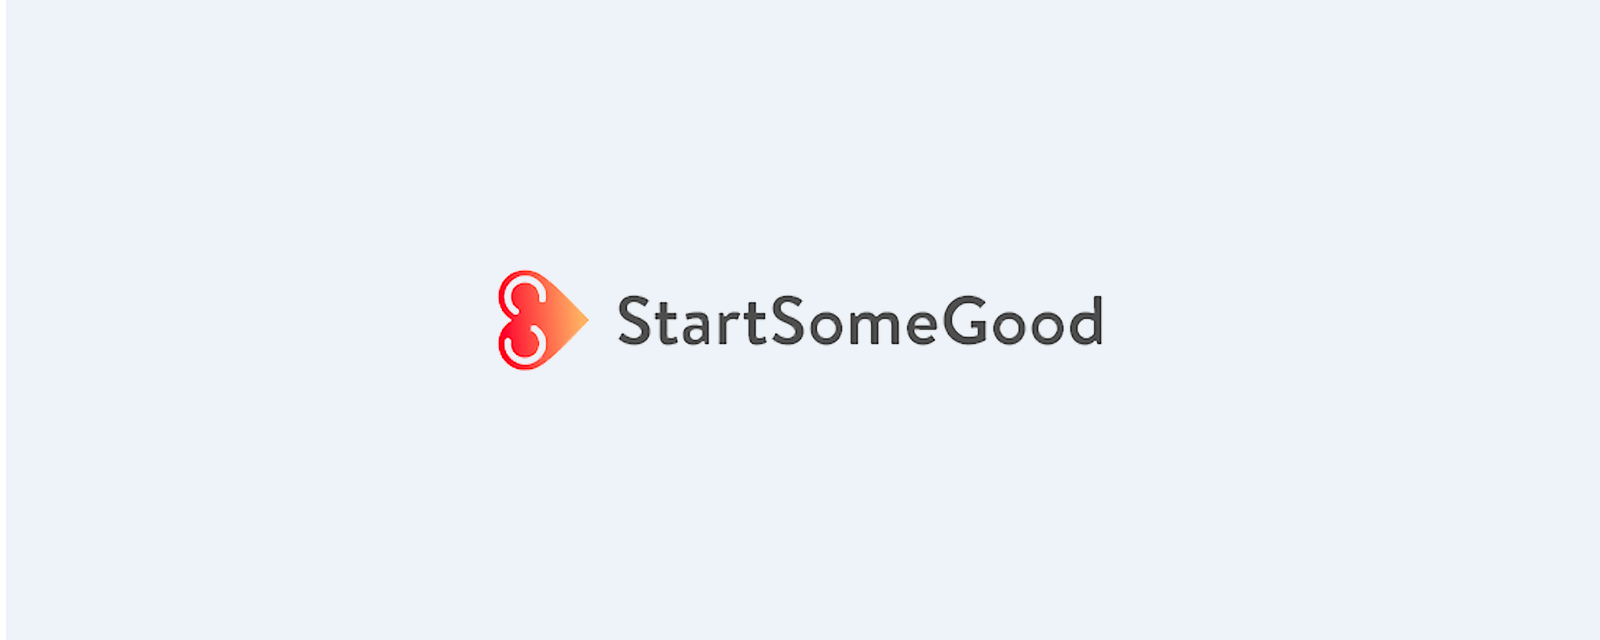 Check out StartSomeGood's fundraising website.